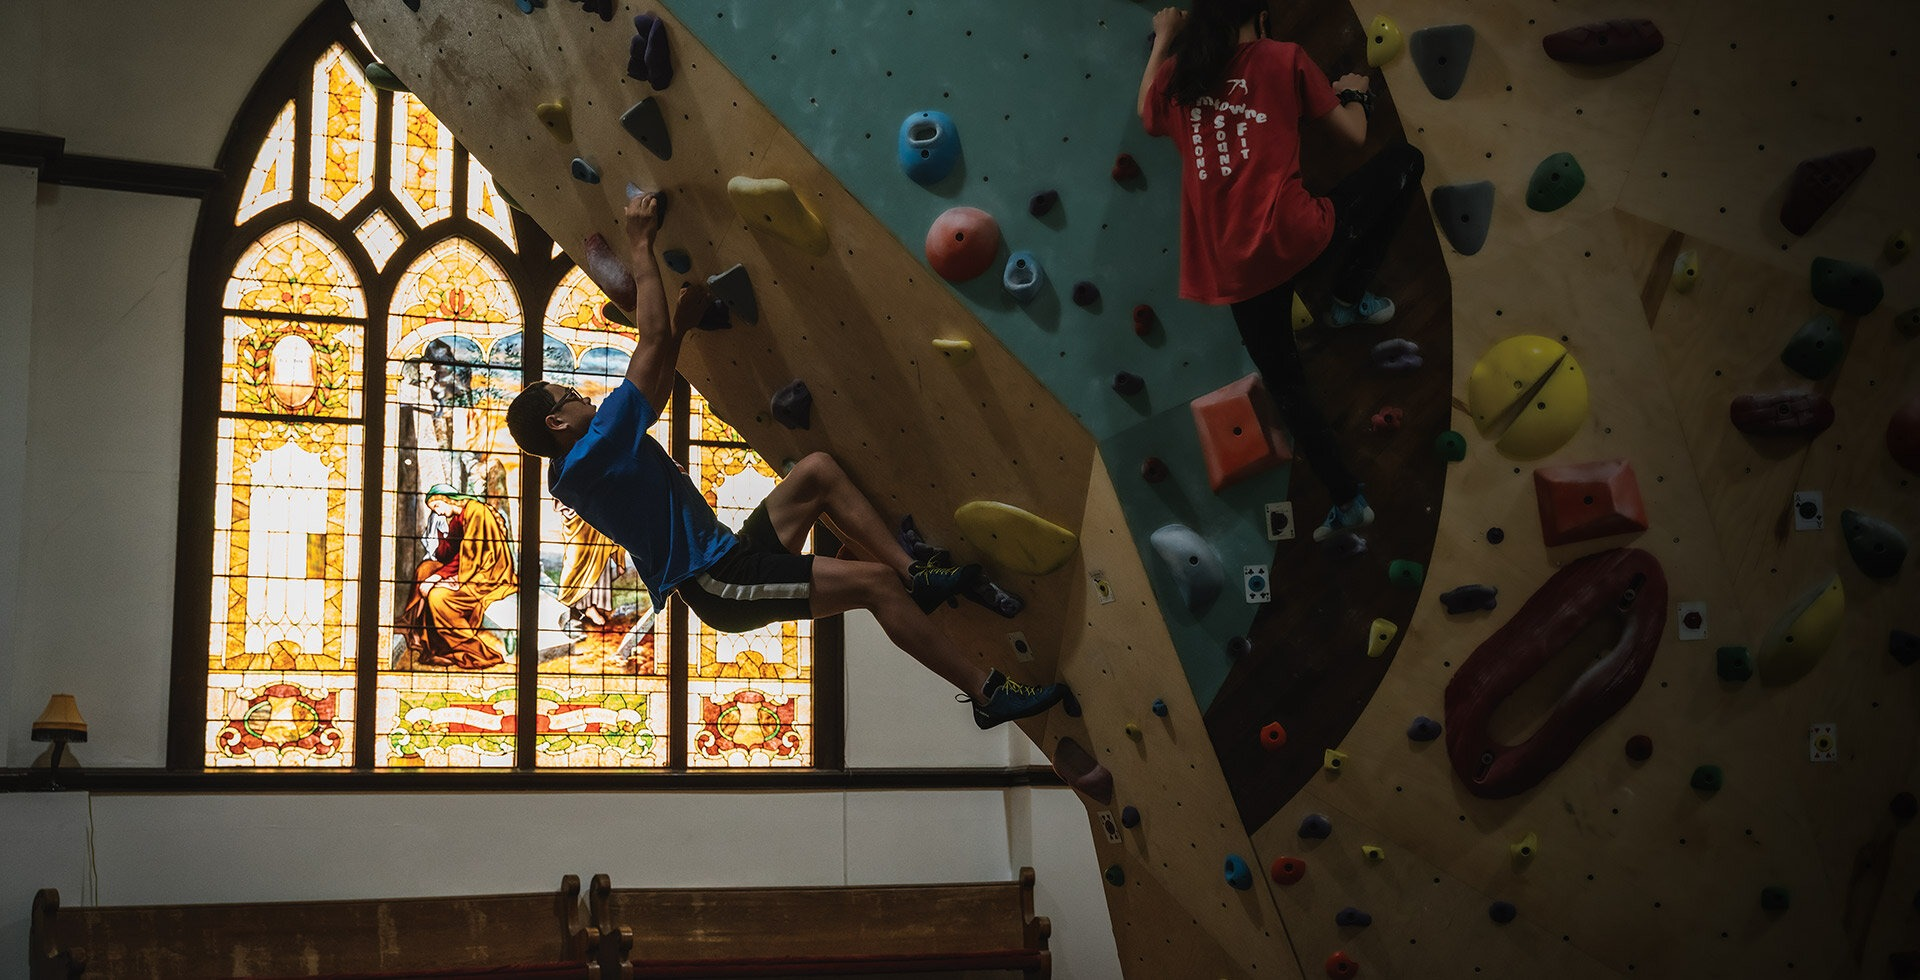 Stained glass isn't the usual décor of climbing gyms, though, at Brimstone Boulders in Hood River, it's a hallmark feature of the space.